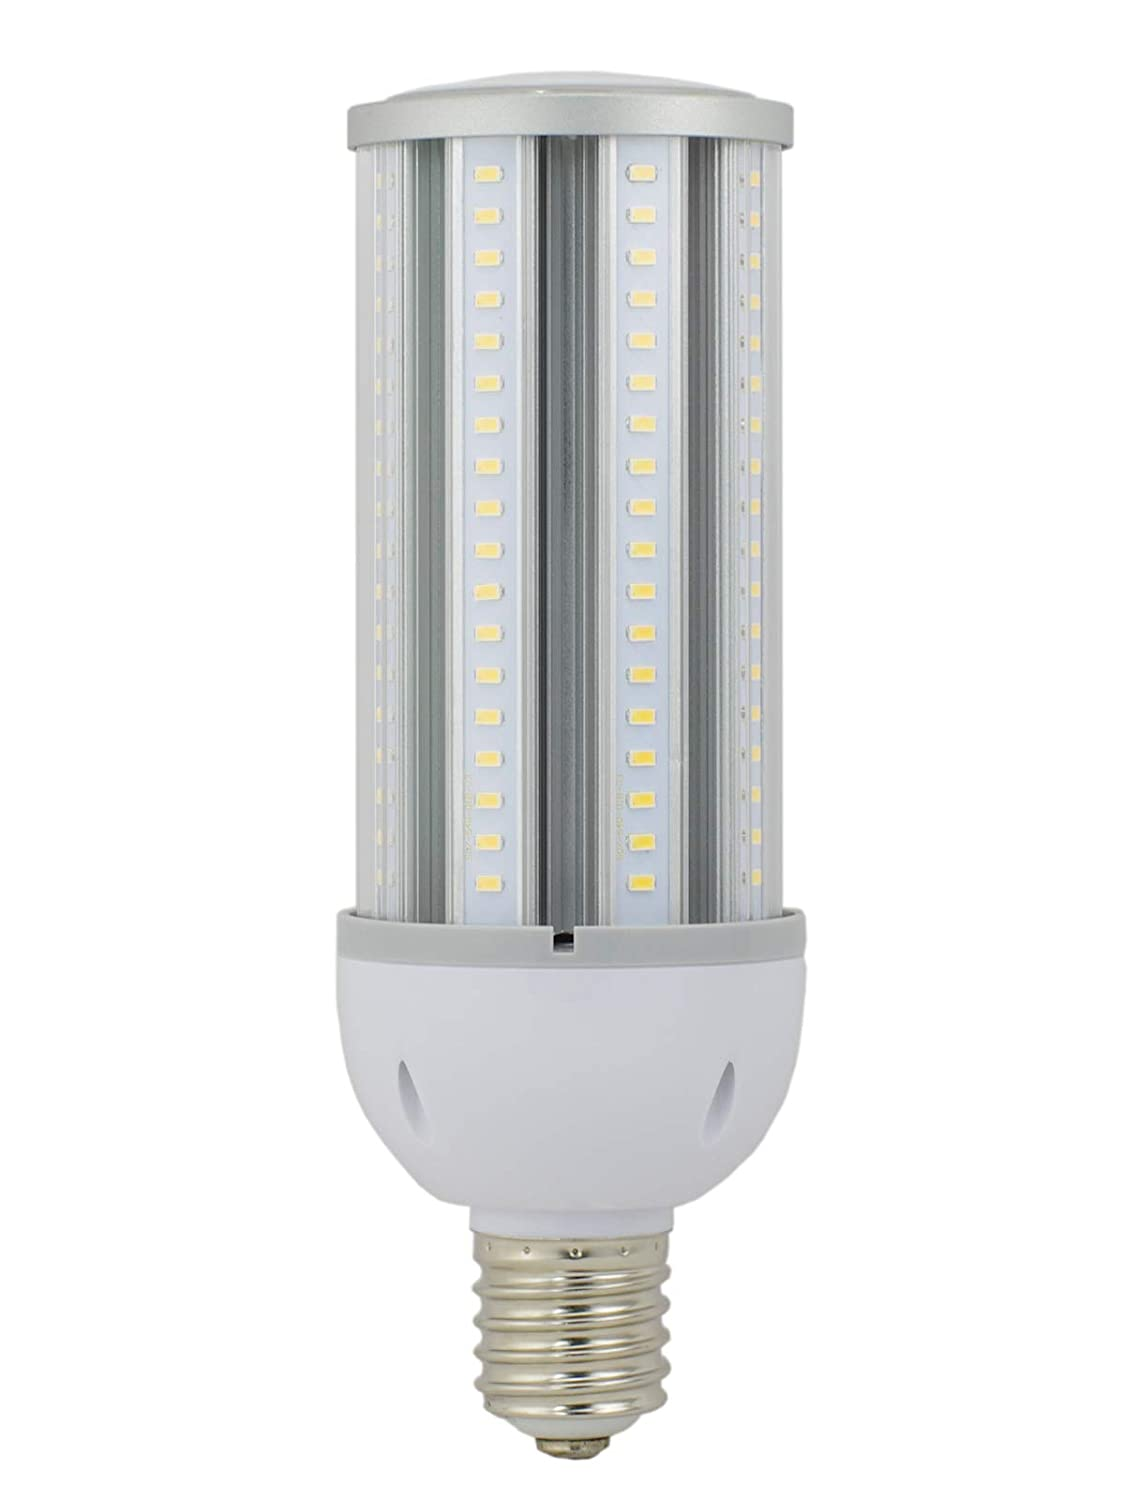 Used in Post top Acorn,Replace 250-300w Metal halide Orlich 2 Packs 54W led Corn Bulb,led Corn Light 6700lm